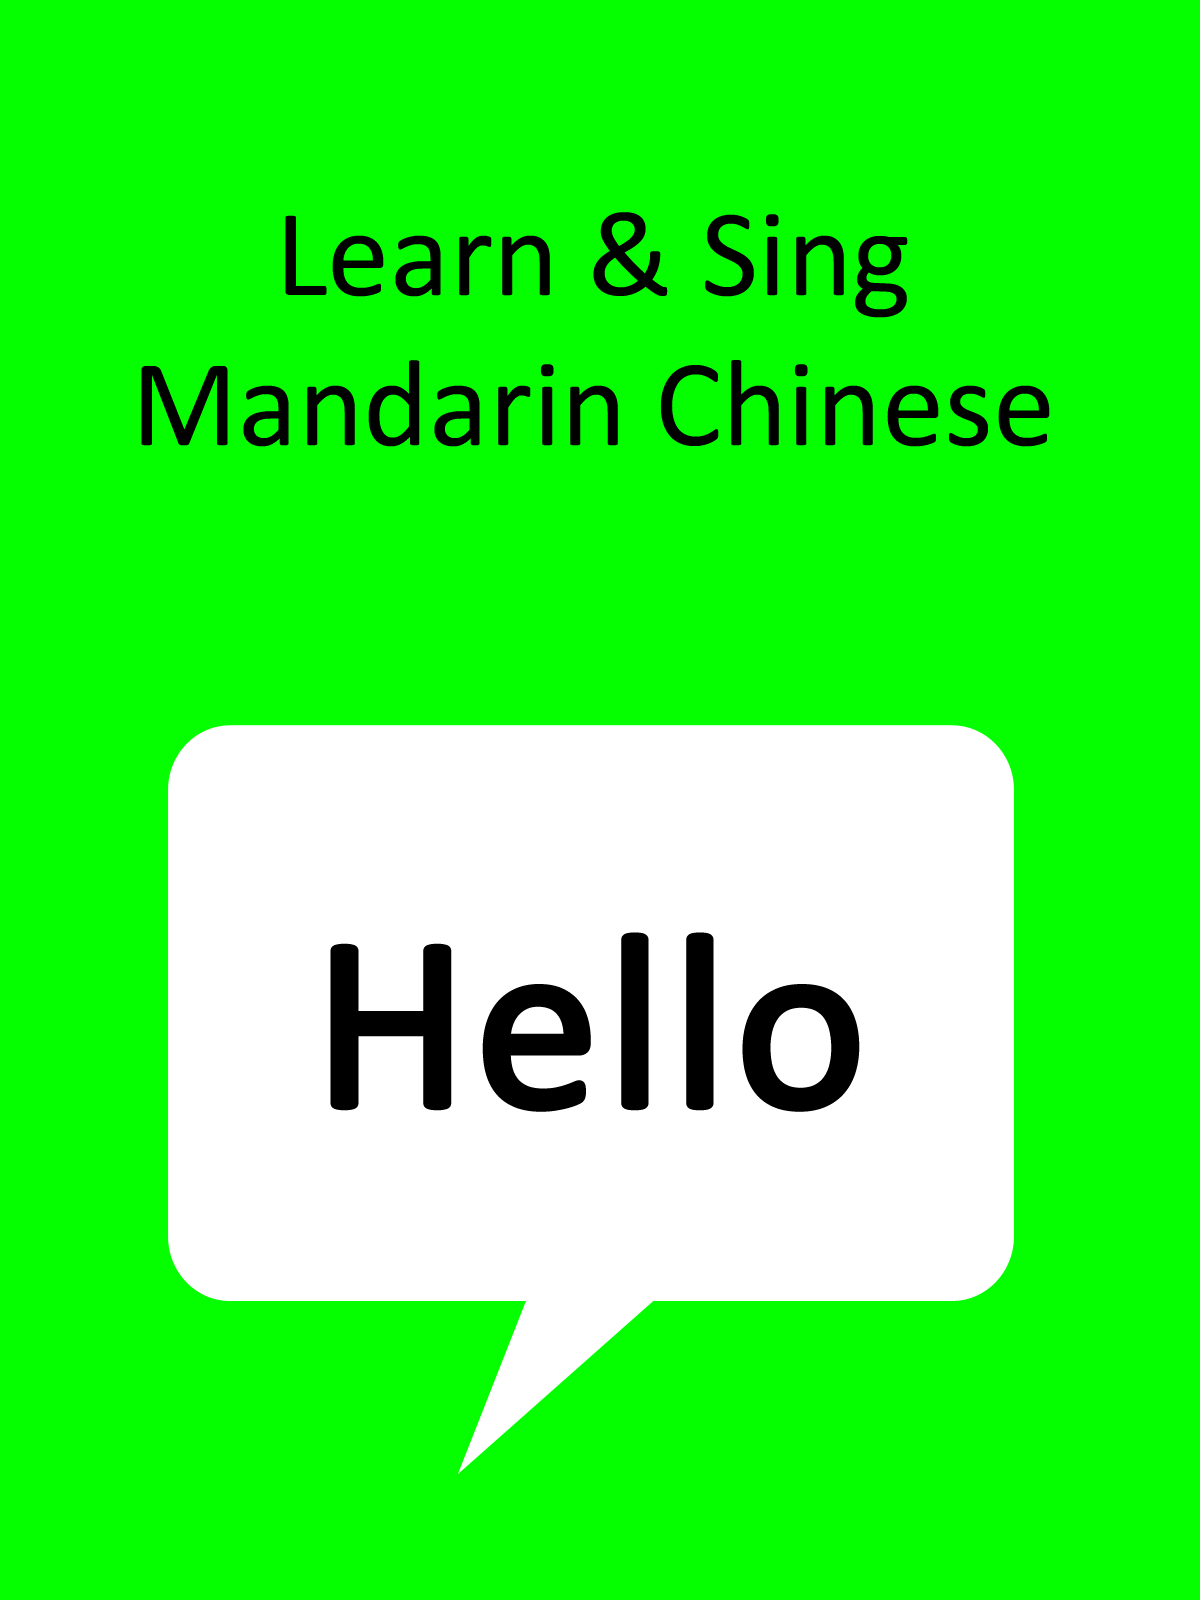 Video hello learn and sing mandarin chinese wenjunior video hello learn and sing mandarin chinese m4hsunfo